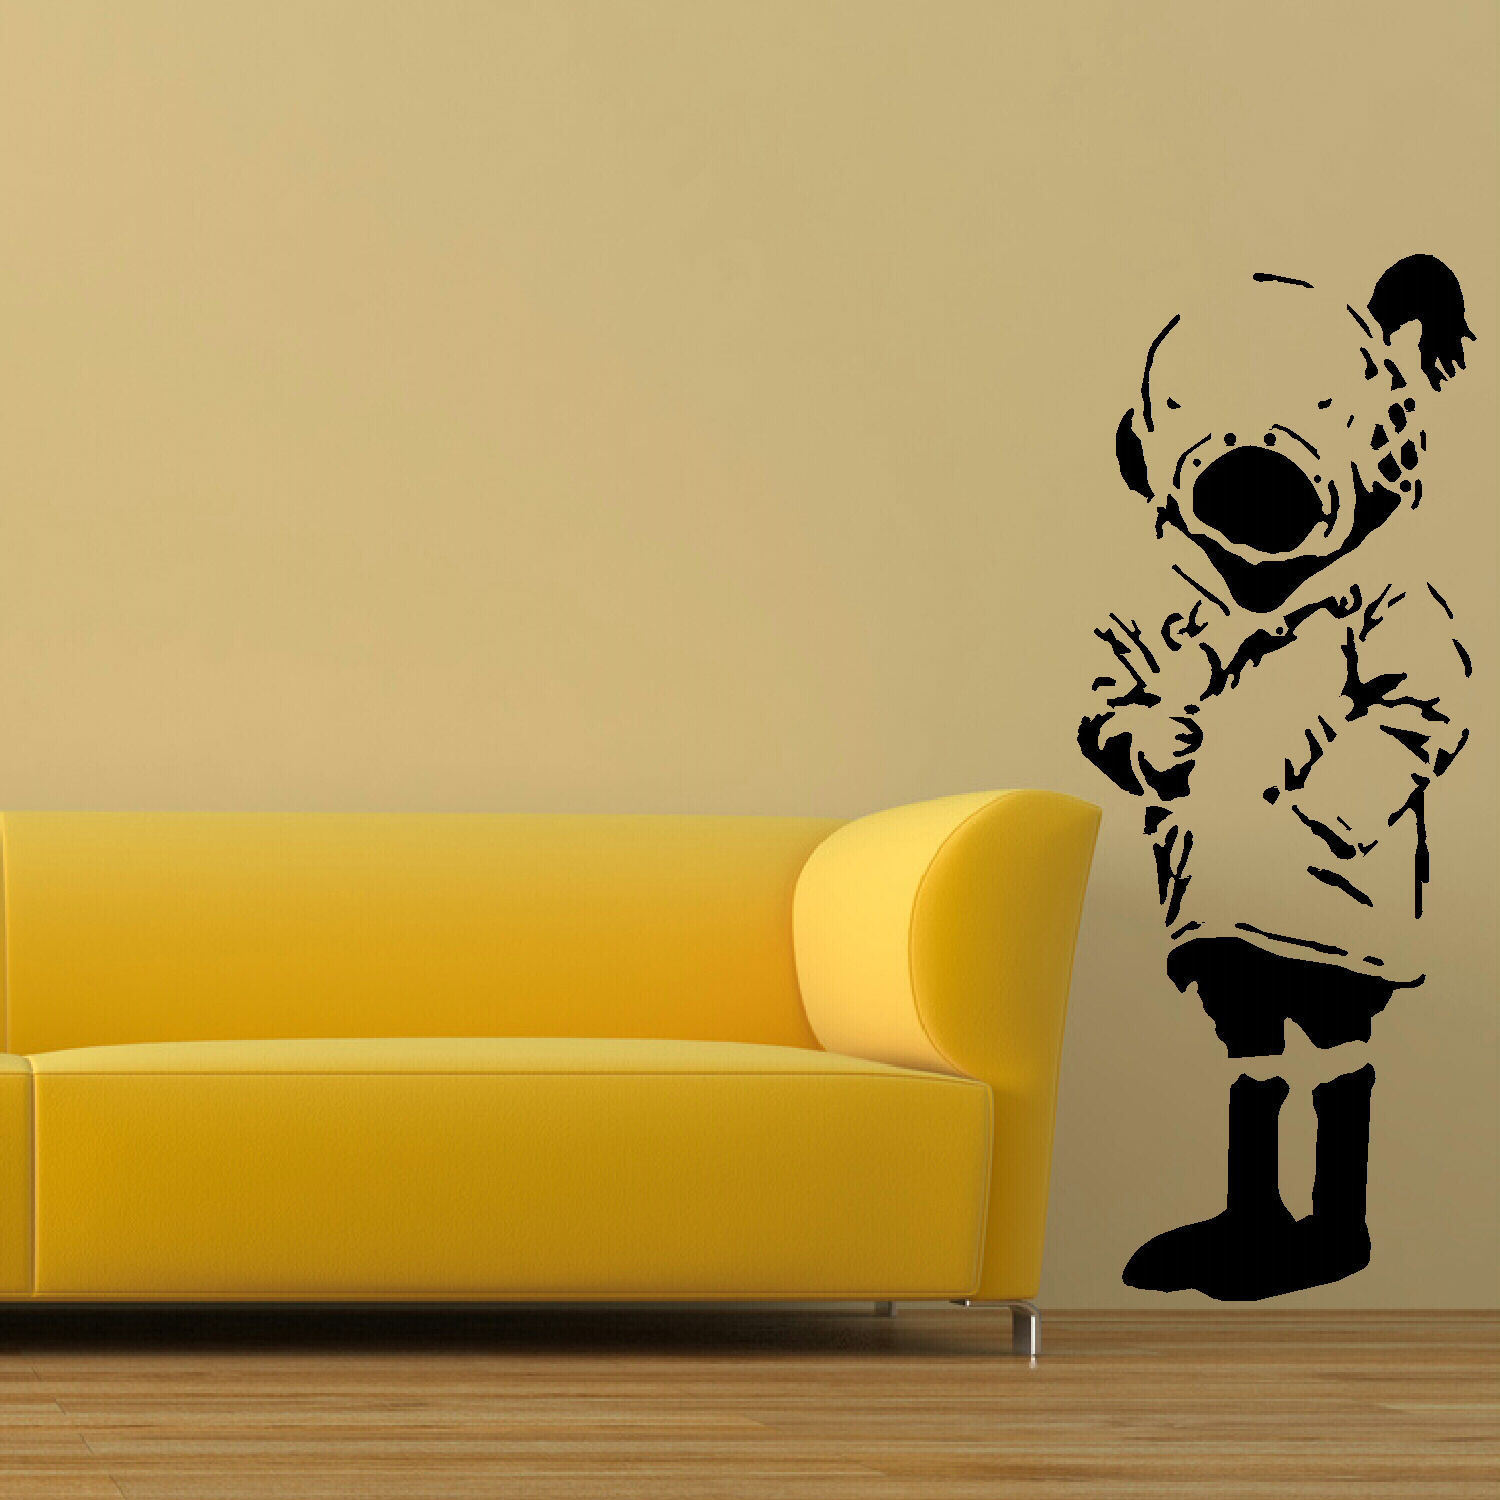 LARGE WALL STICKER BANKSY DIVER GIRL LIFE SIZE BEDROOM ART UK ...